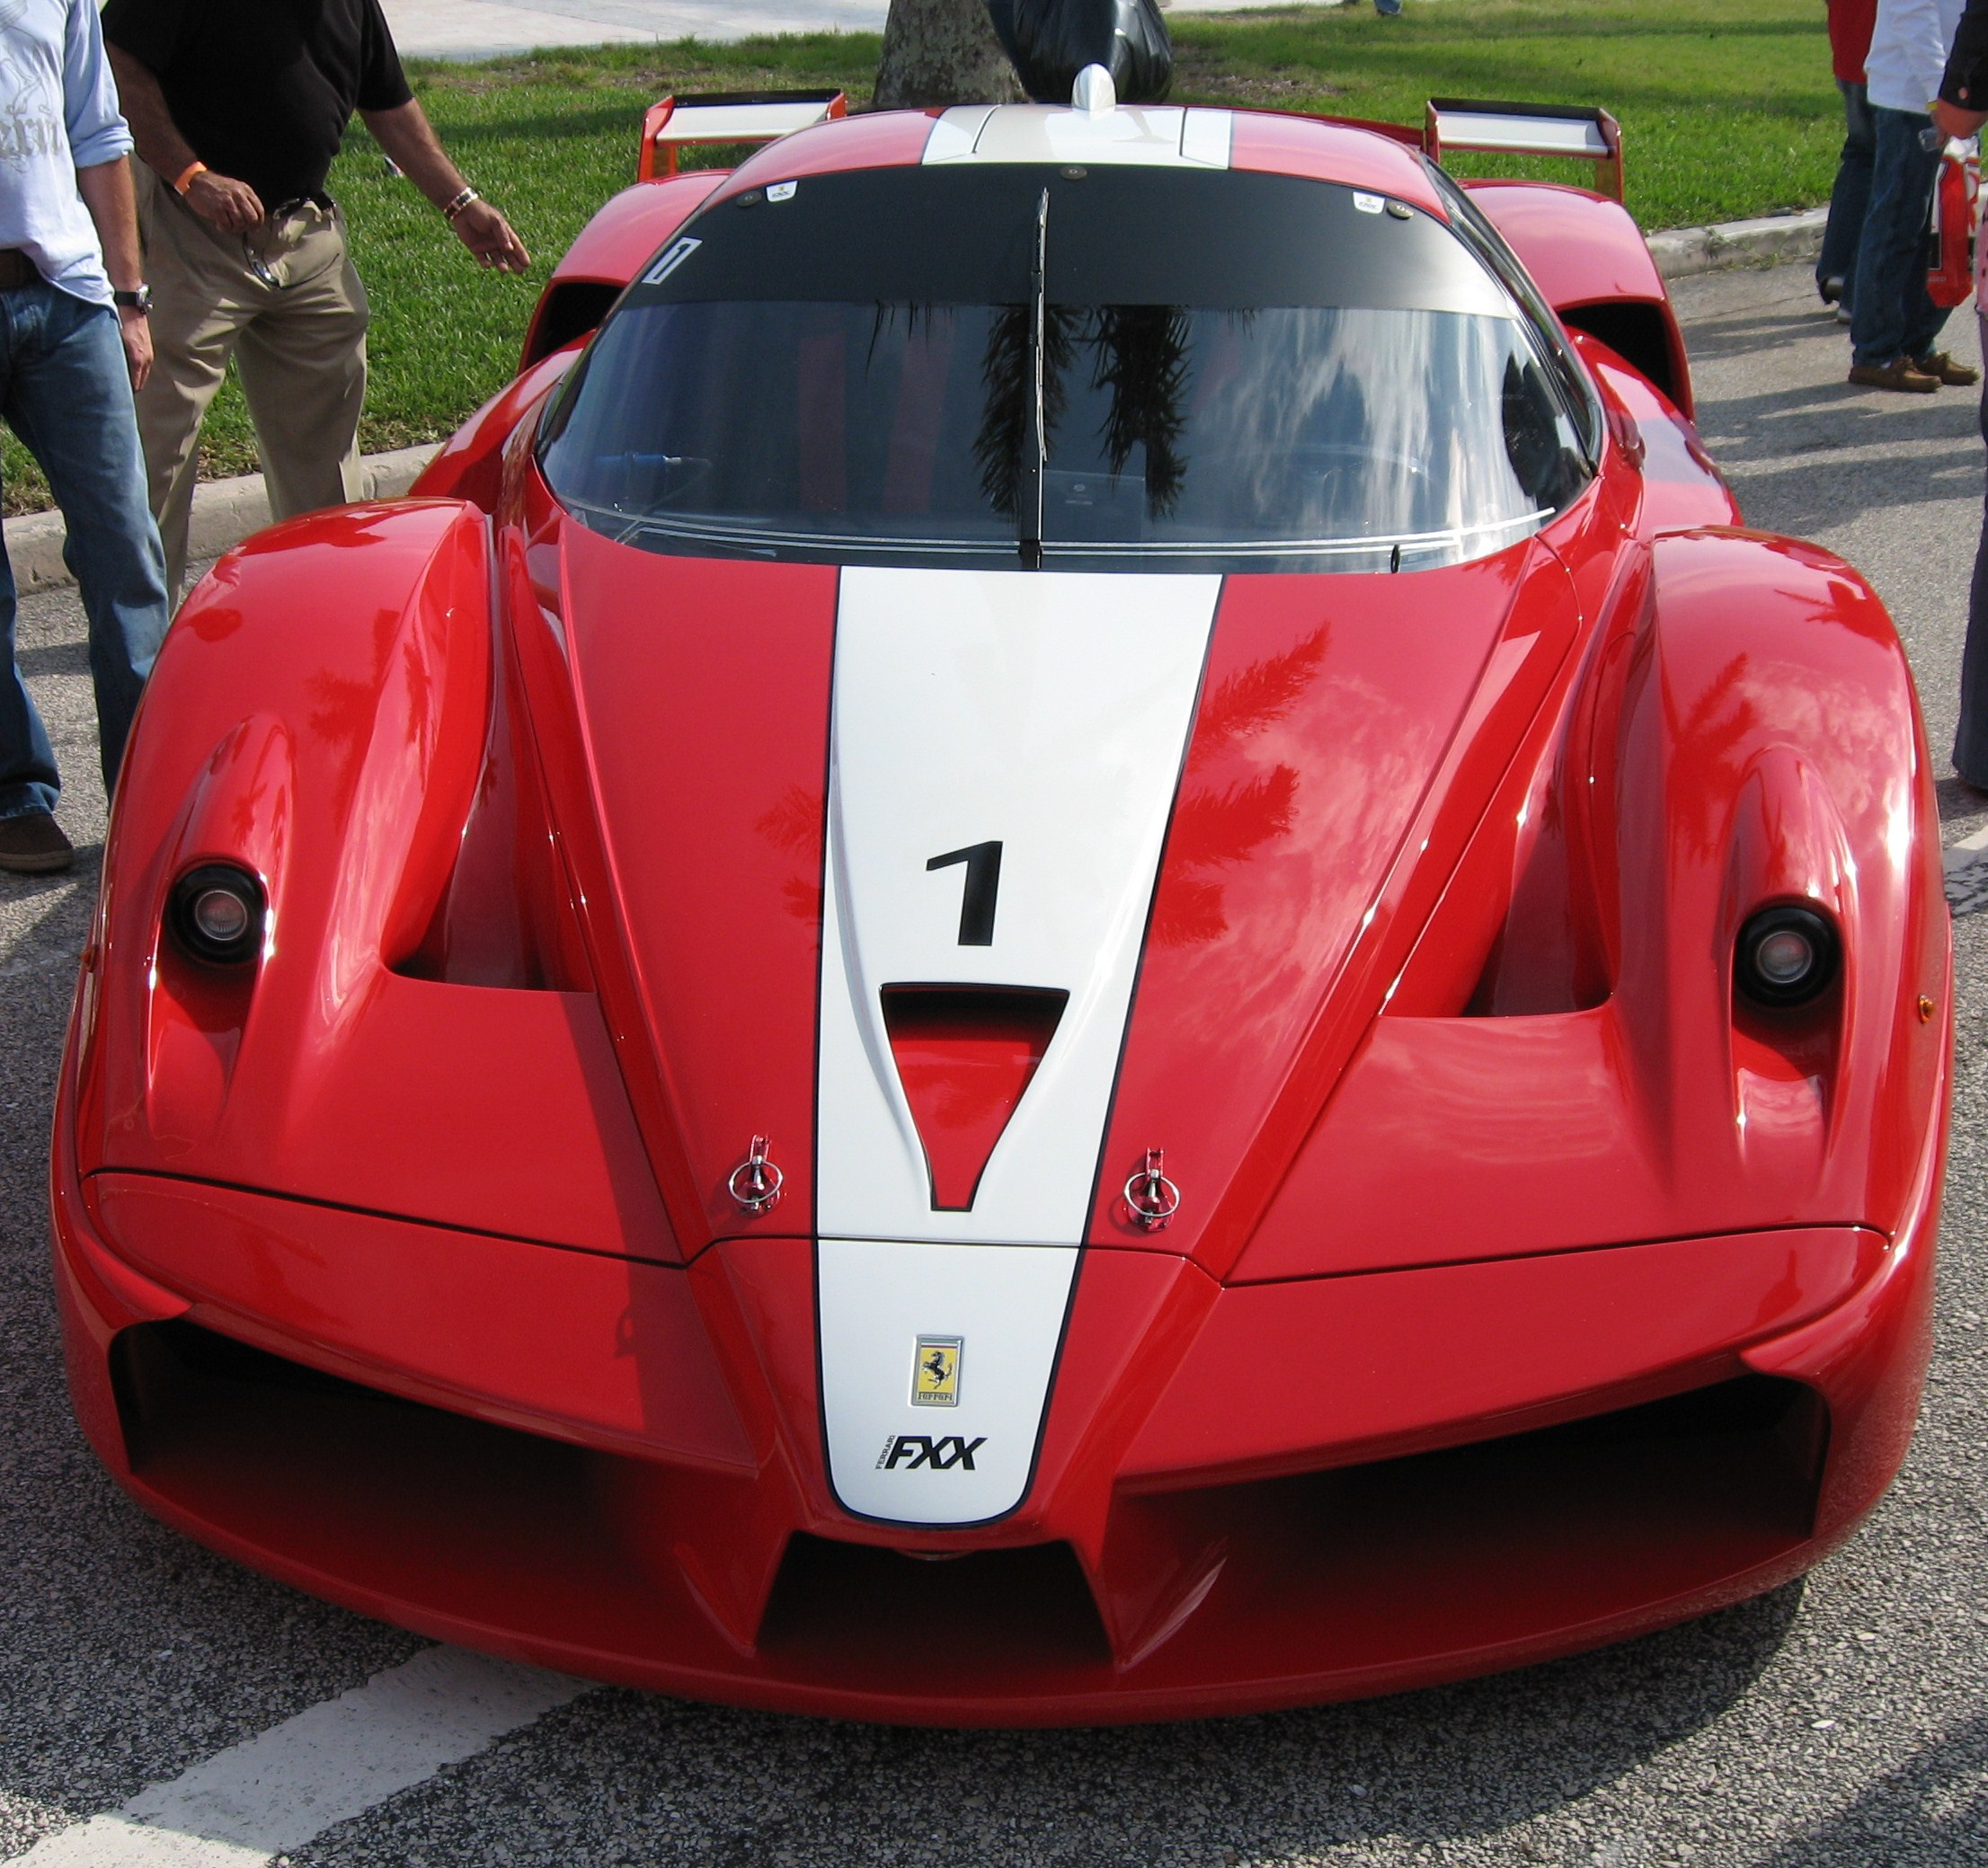 Ferraris: Raise Your Flag To Ferraris In Red, White And Blue